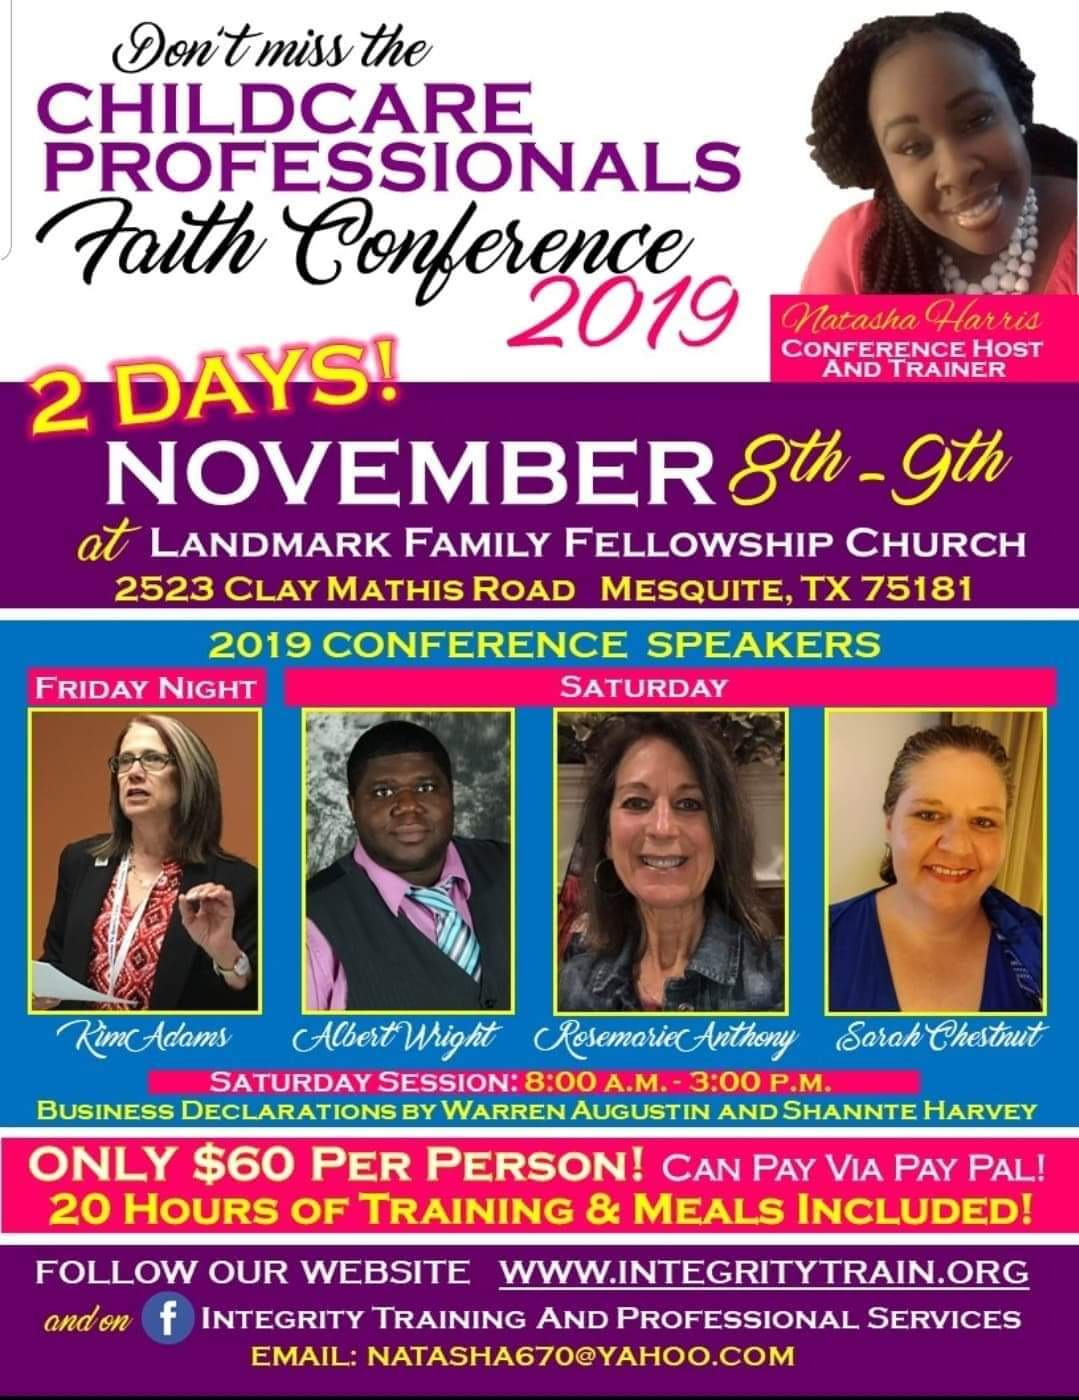 2019 Childcare Professionals Faith Conference